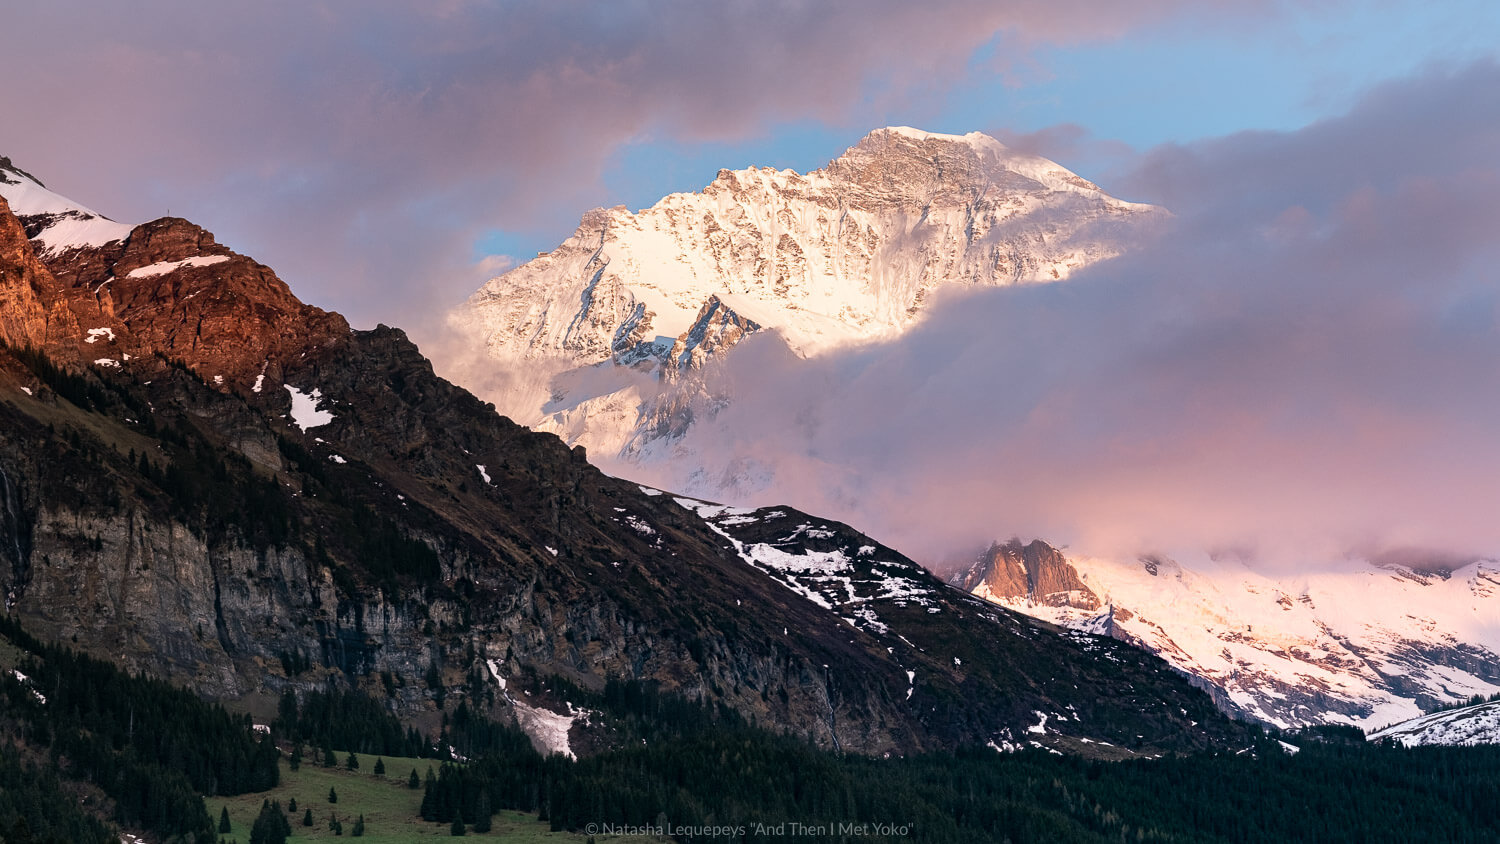 """Mountains at sunset in Wengen, Switzerland. Travel photography and guide by © Natasha Lequepeys for """"And Then I Met Yoko"""". #wengen #switzerland #jungfrau #travelphotography #fujifilm"""